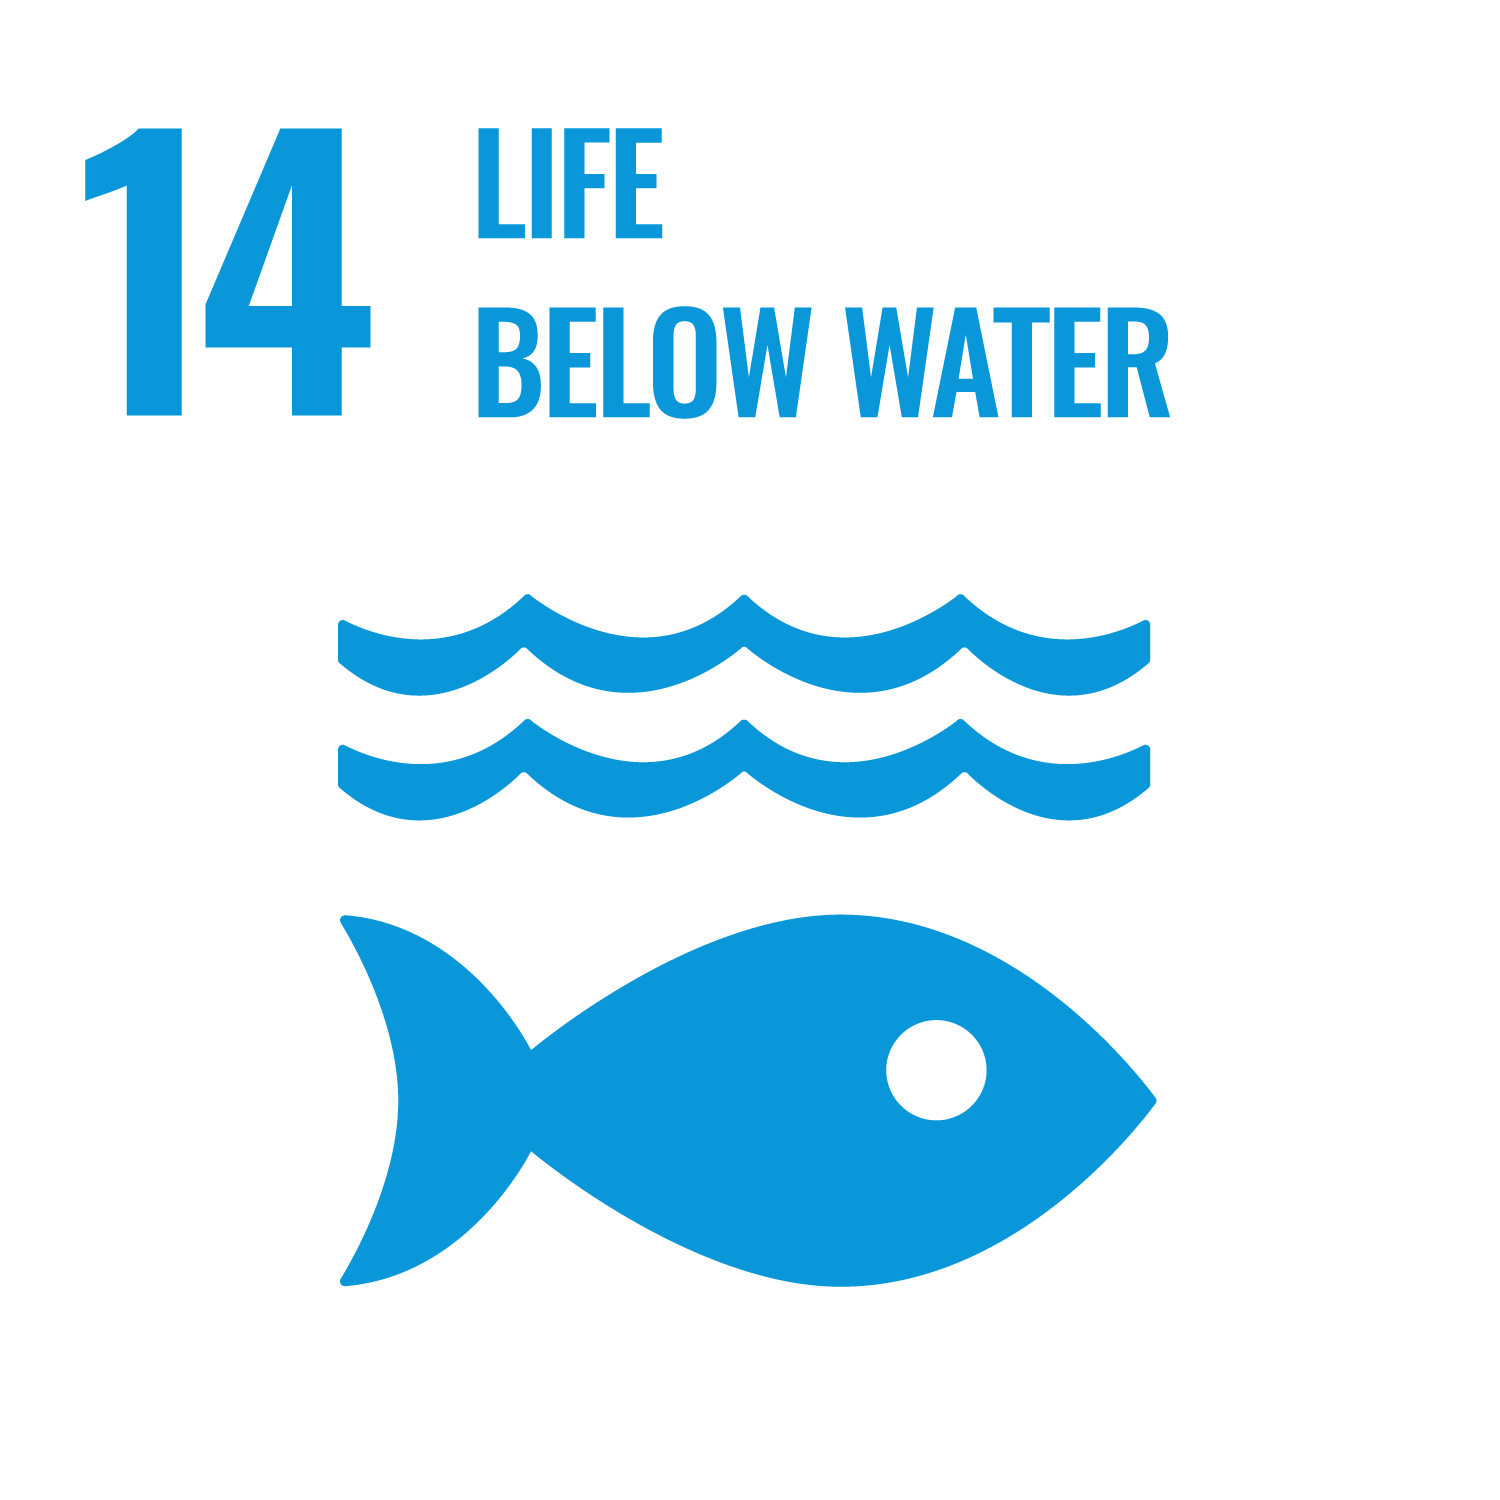 Life below water - Goal 14